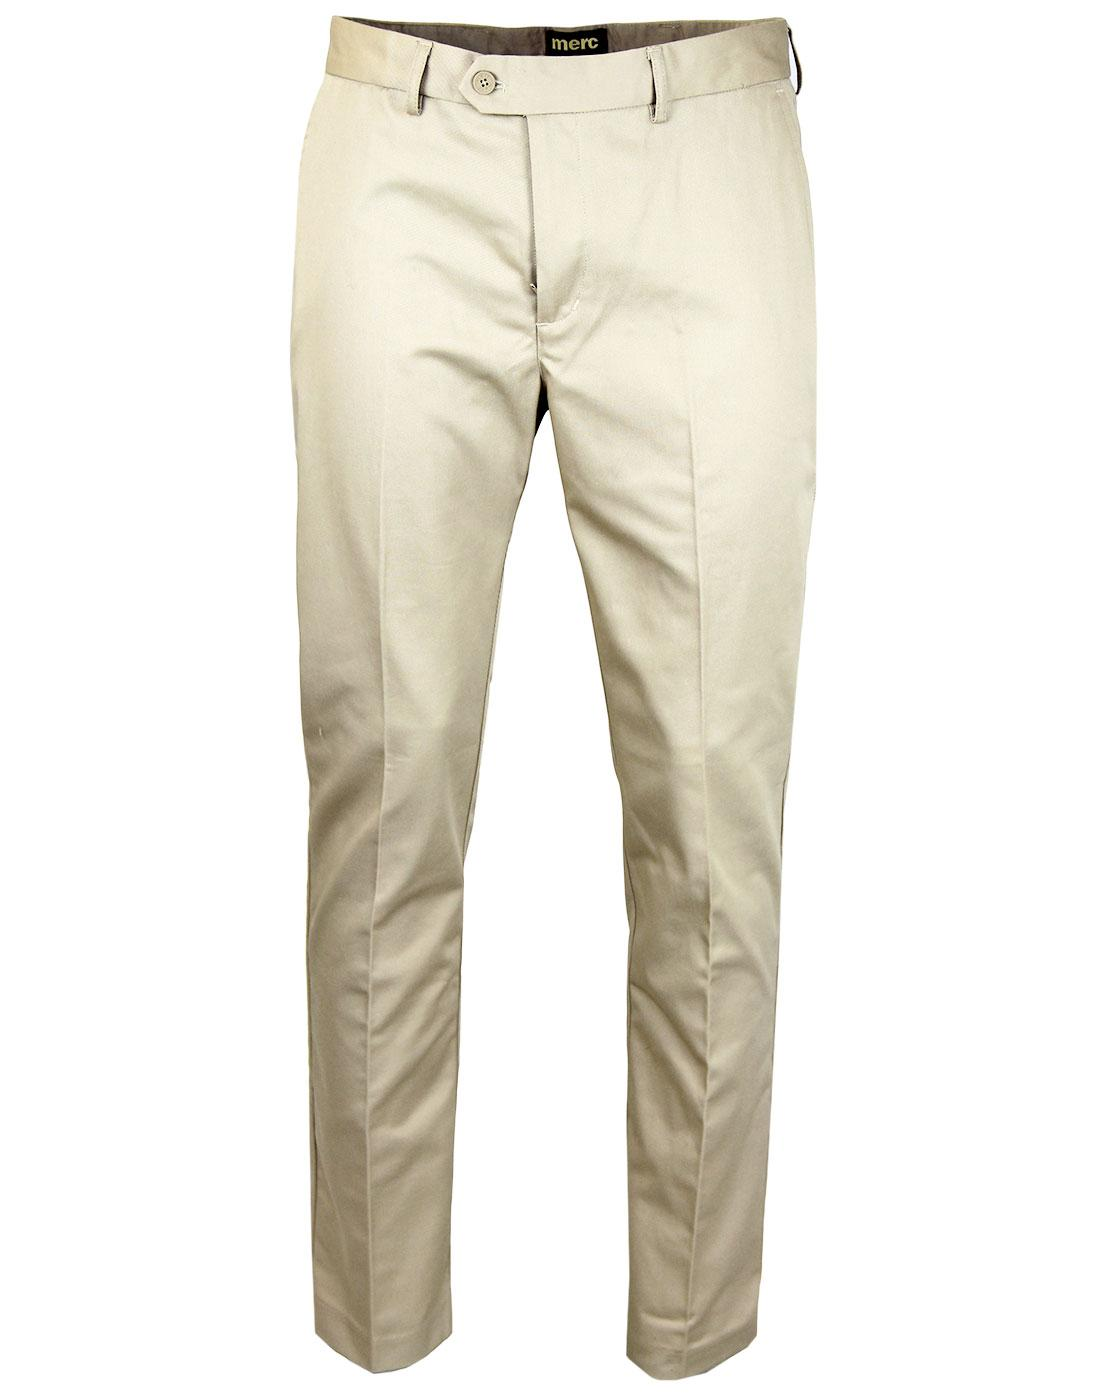 Winston MERC Mod Sta Press Retro Trousers (Cream)